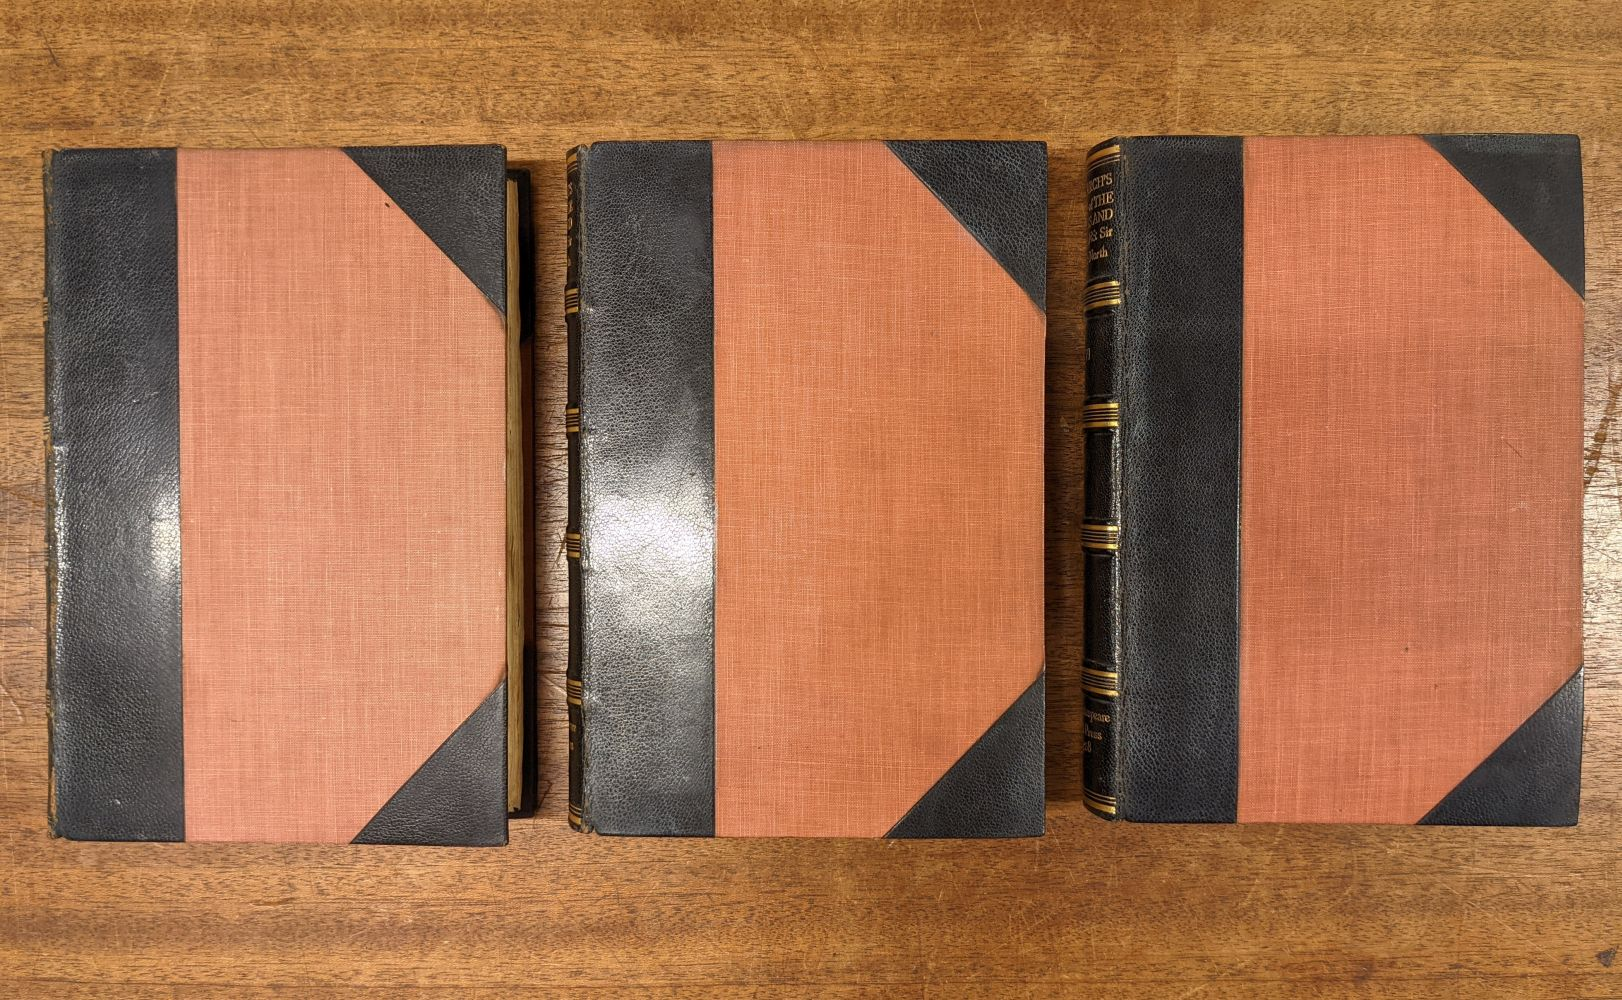 Shakespeare Head Press. Lives of the Noble Grecians and Romanes, 1928 - Image 5 of 13